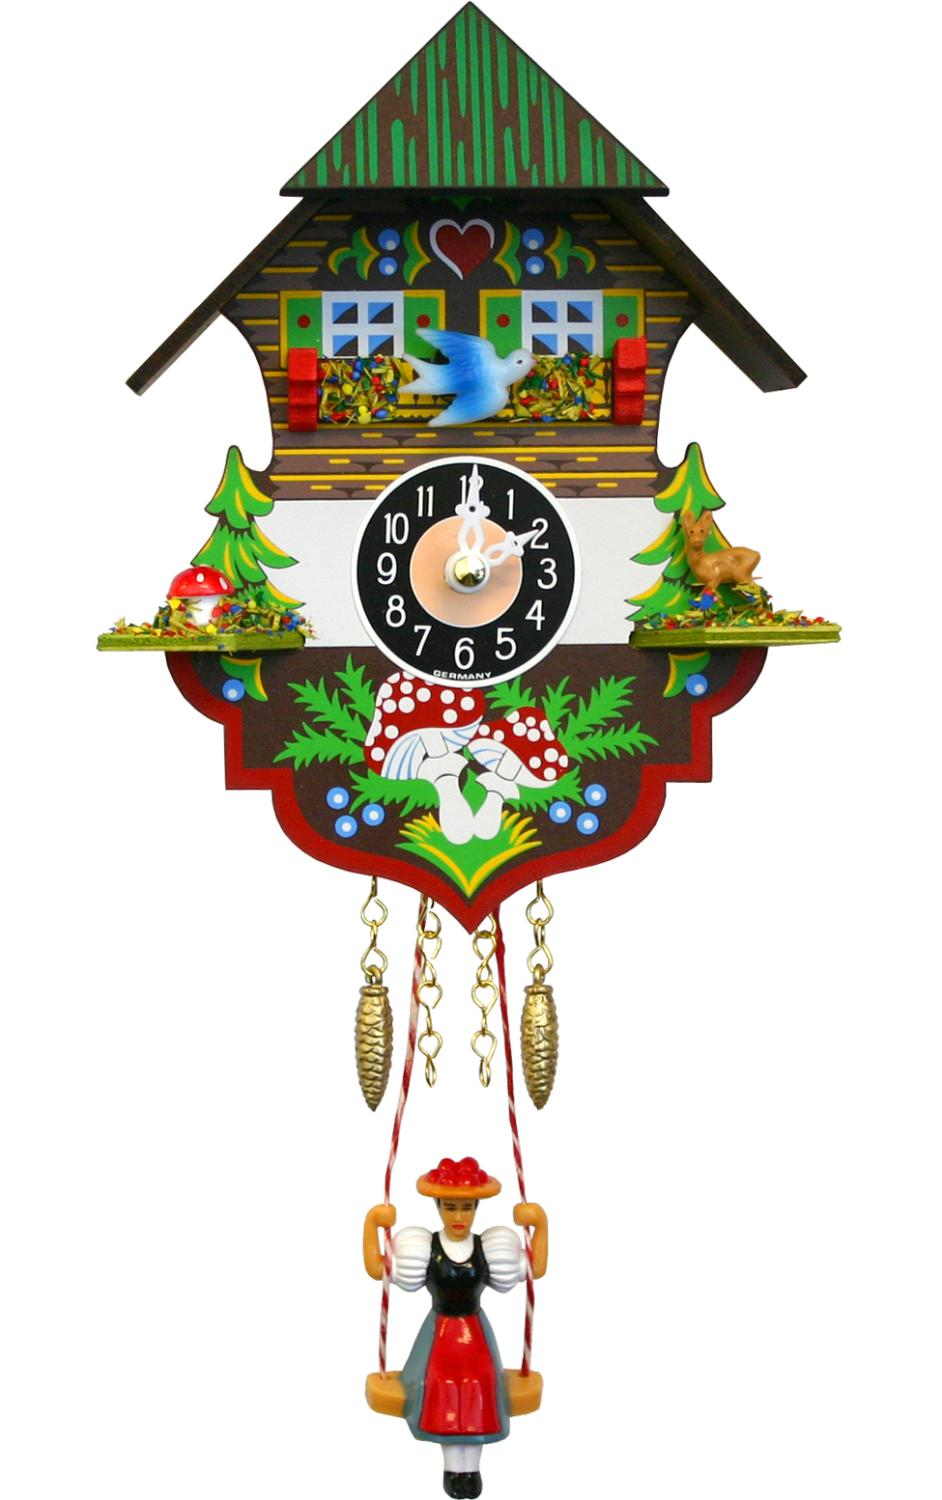 0197SQ - Engstler Battery-operated Clock - Mini Size with Music/Chimes - 6.5